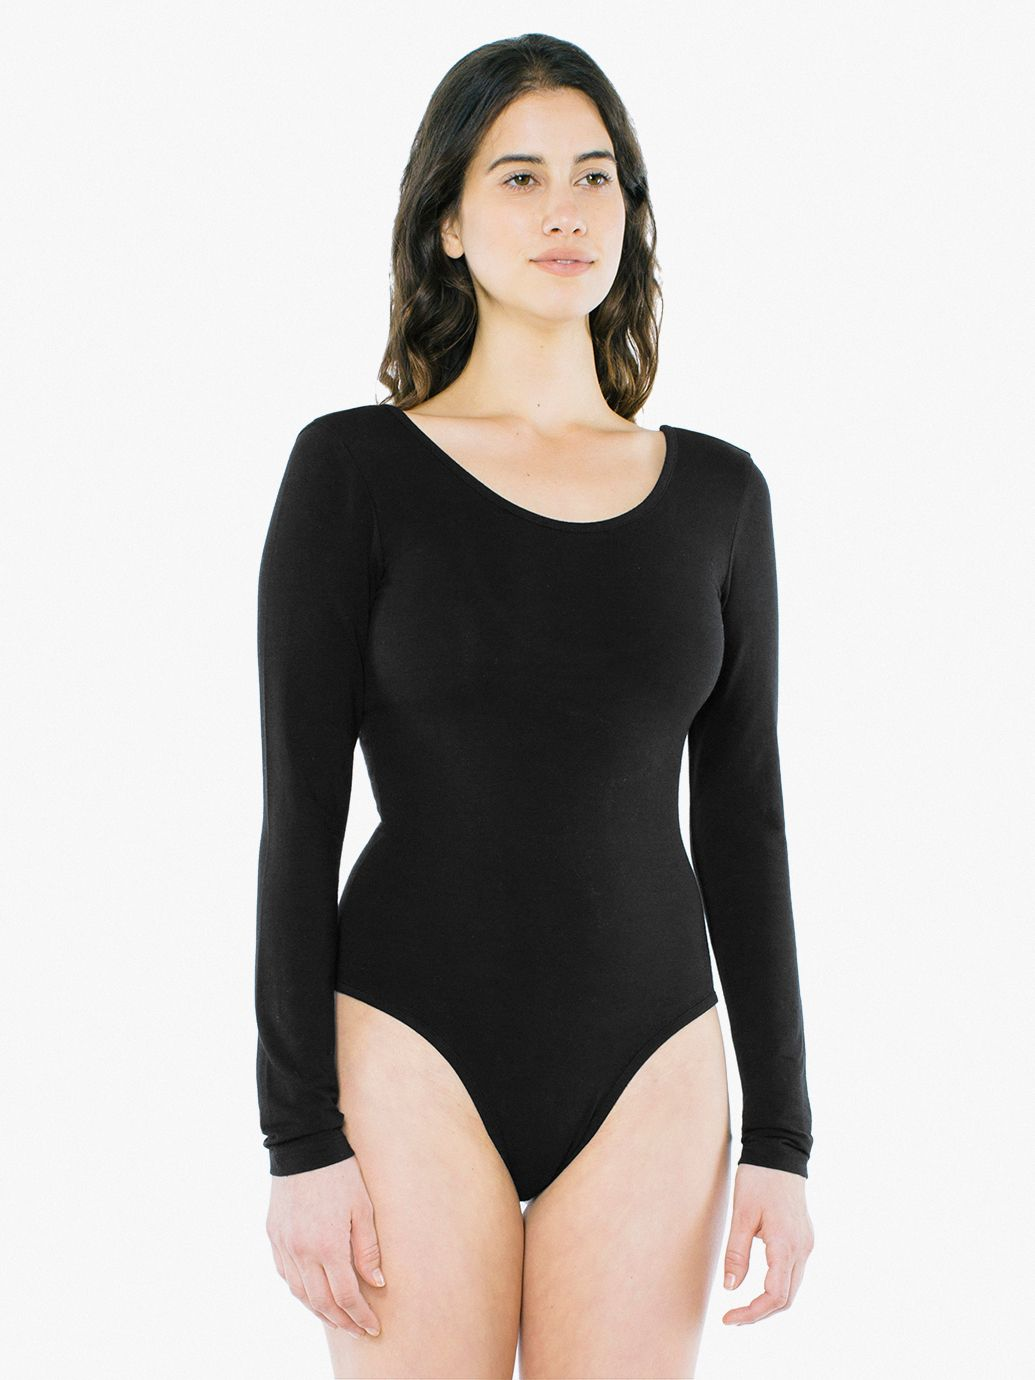 d98df4739025 New American Apparel Cotton Spandex Long Sleeve Scoop Back Bodysuit ...